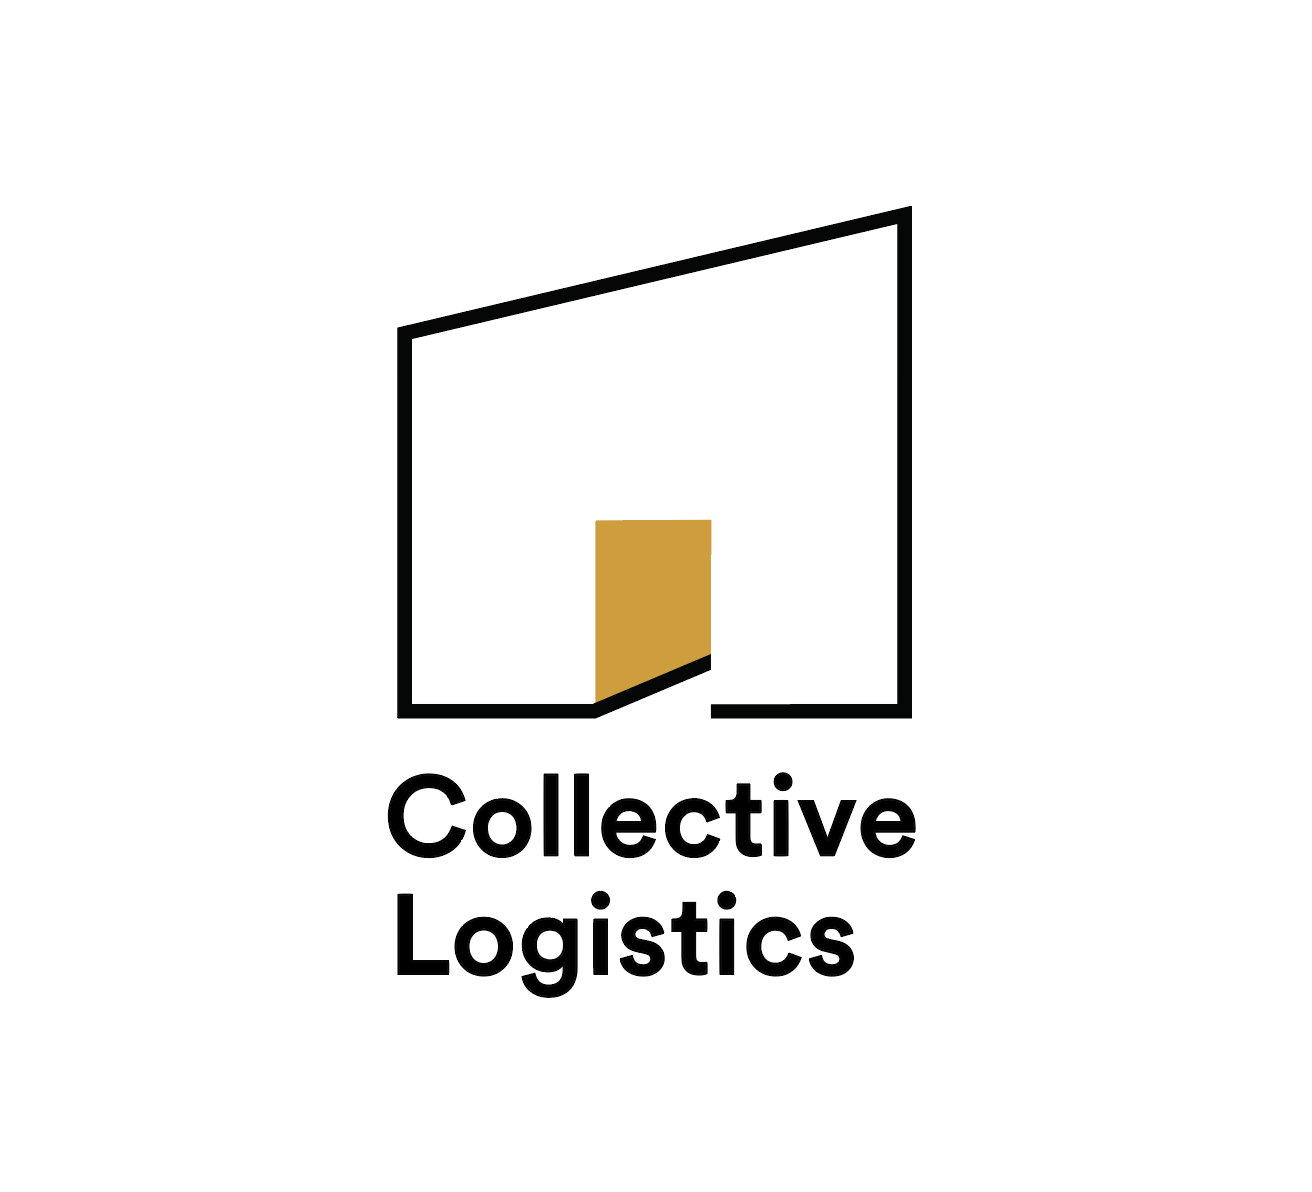 Collective Logistics